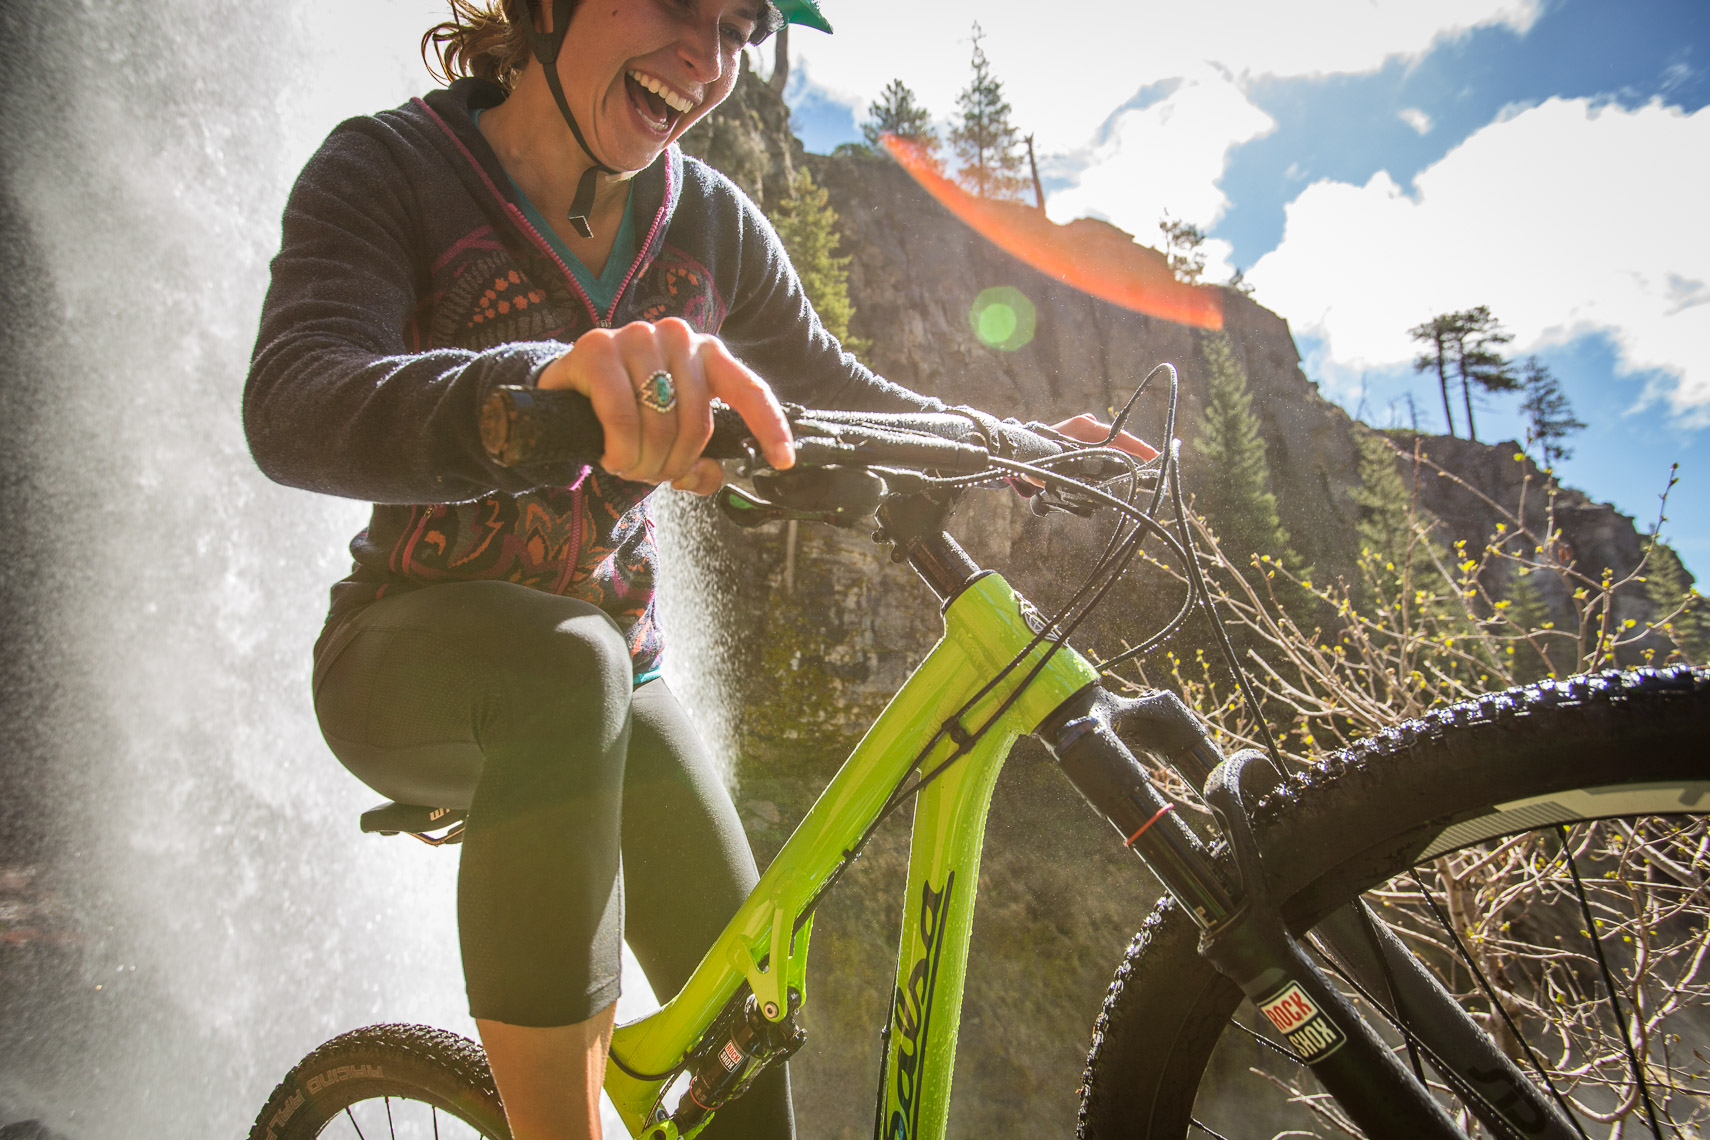 Woman Mountain Biking Near Waterfall